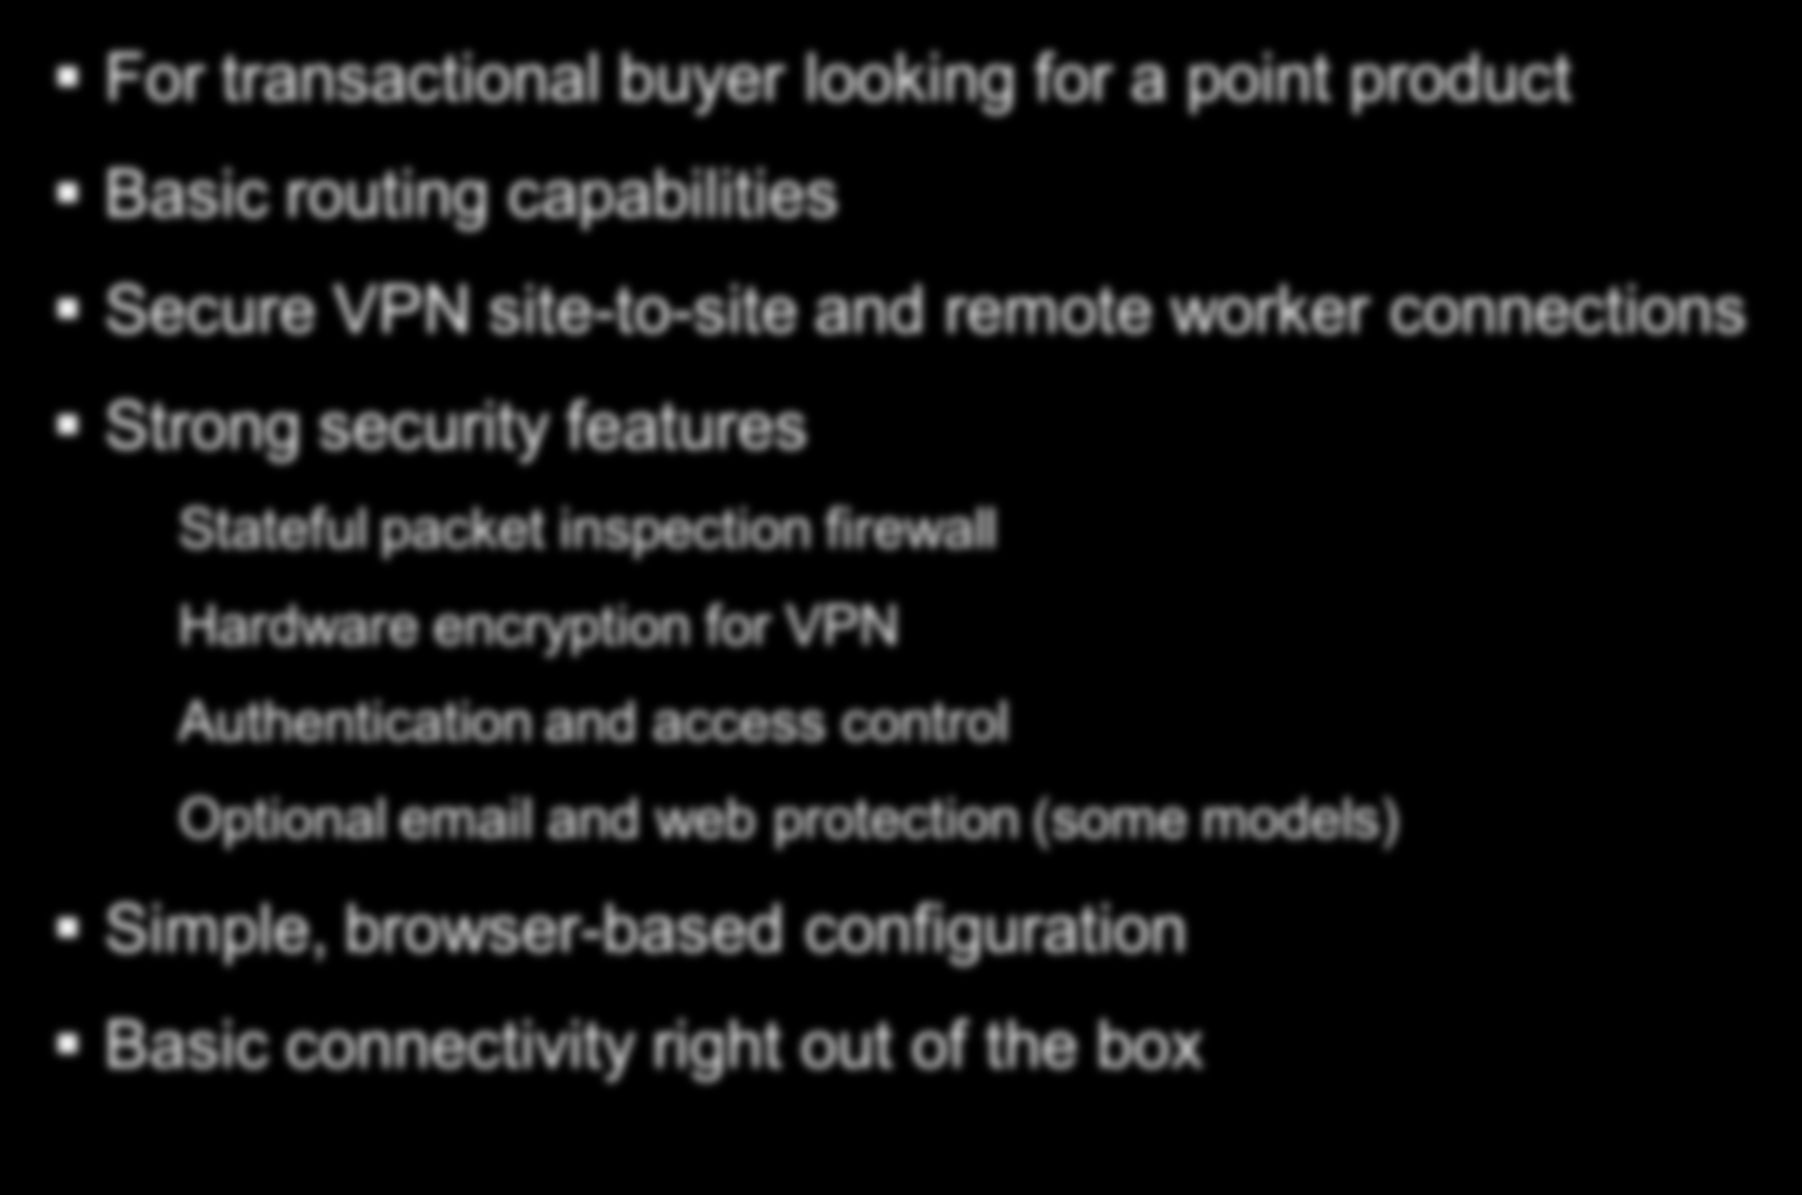 Cisco Small Business Routers For transactional buyer looking for a point product Basic routing capabilities Secure VPN site-to-site and remote worker connections Strong security features Stateful